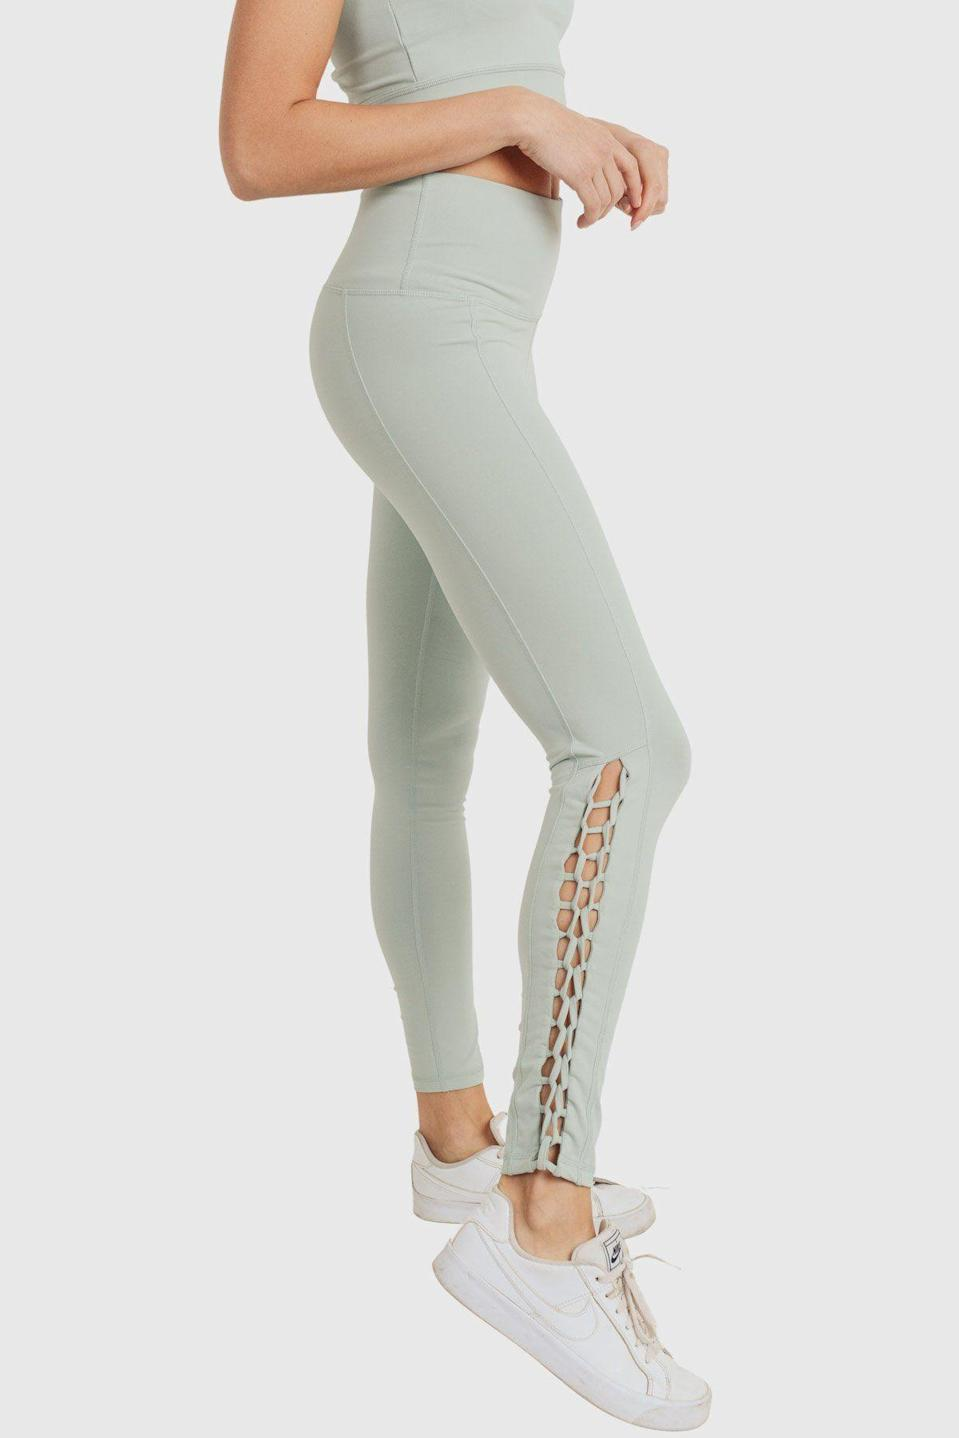 """<p>monobathleisure.com</p><p><strong>$43.00</strong></p><p><a href=""""https://www.monobathleisure.com/collections/all/products/highwaist-solid-full-leggings-with-braid-details"""" rel=""""nofollow noopener"""" target=""""_blank"""" data-ylk=""""slk:Shop Now"""" class=""""link rapid-noclick-resp"""">Shop Now</a></p><p>I might put <a href=""""https://www.seventeen.com/fashion/g27325538/best-lululemon-leggings/"""" rel=""""nofollow noopener"""" target=""""_blank"""" data-ylk=""""slk:my Lululemon leggings"""" class=""""link rapid-noclick-resp"""">my Lululemon leggings</a> on hold for these cute lil lace-up bbys.</p>"""